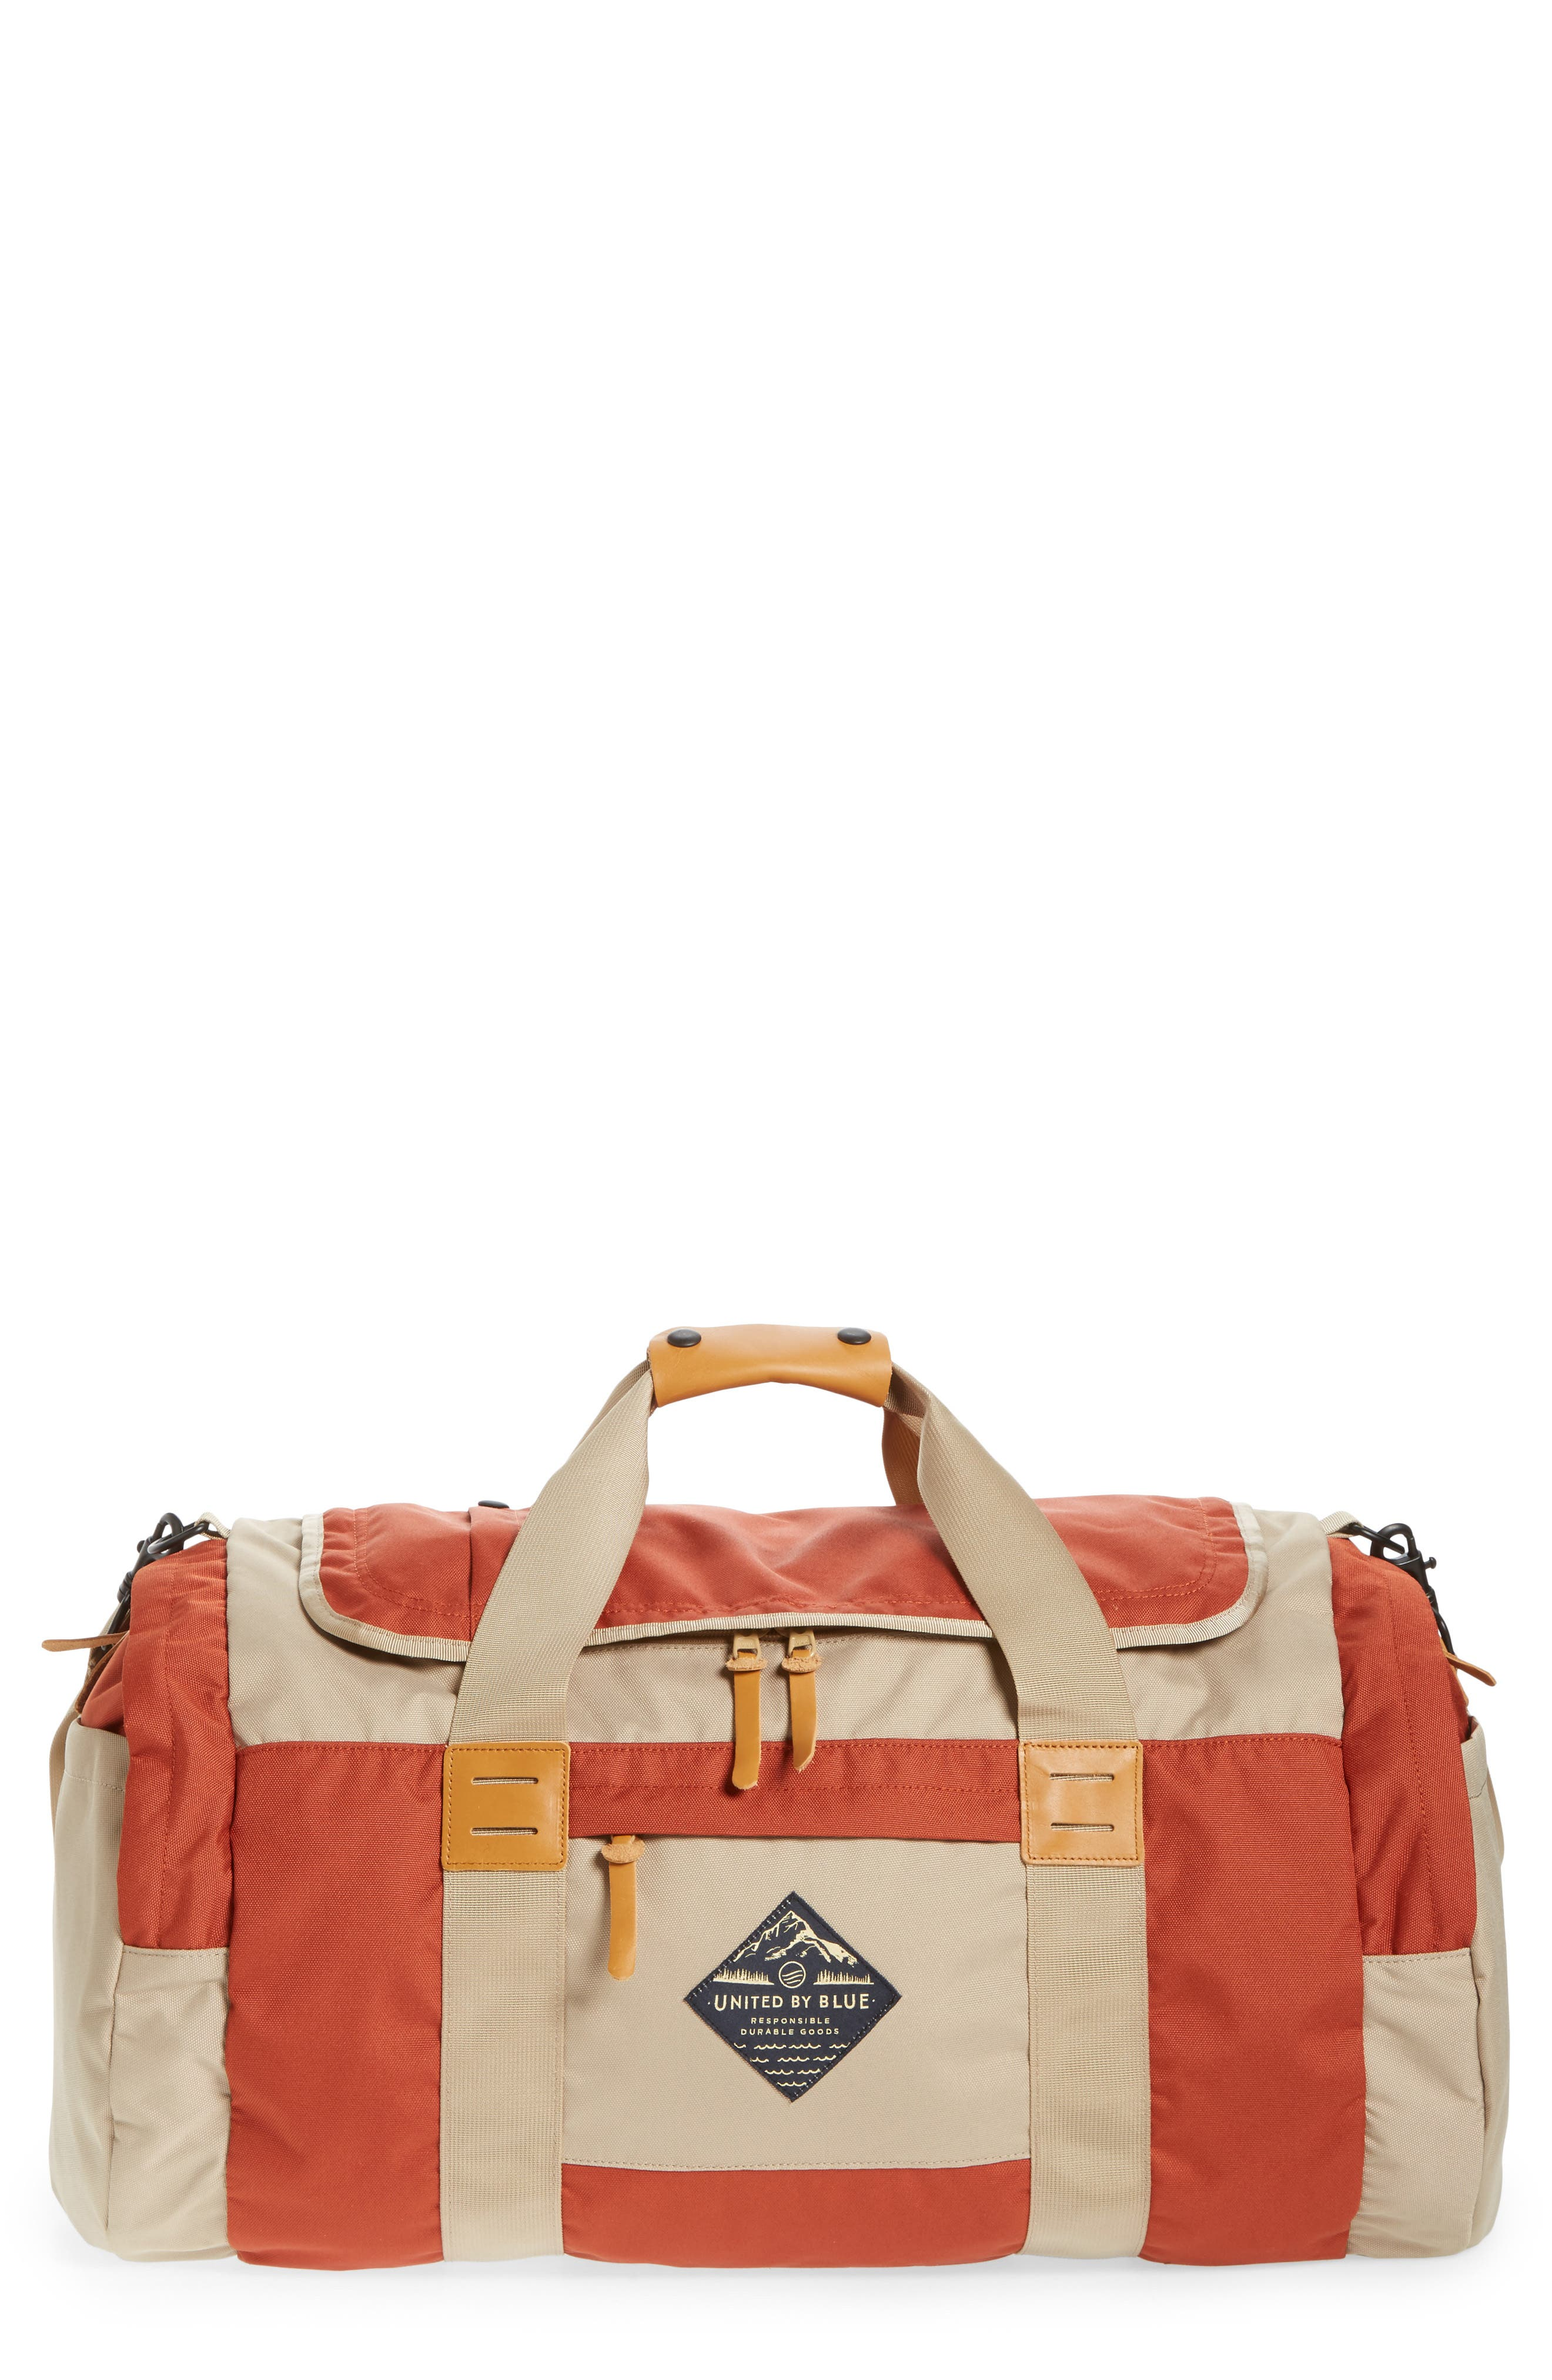 Arc Duffel Bag,                             Main thumbnail 1, color,                             Rust/ Tan